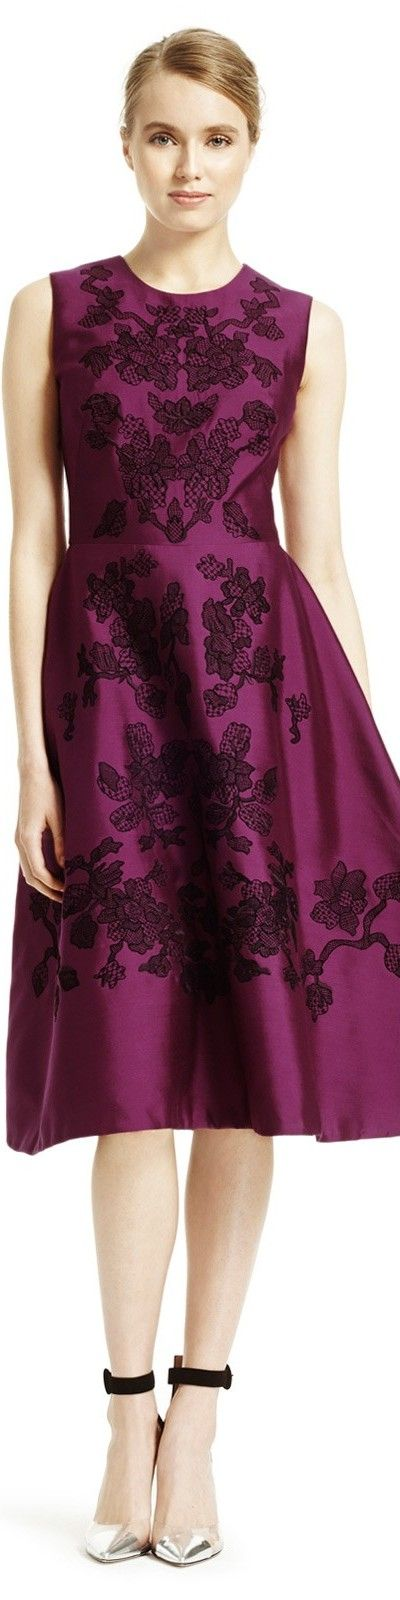 Plum colored dress - by Lela Rose